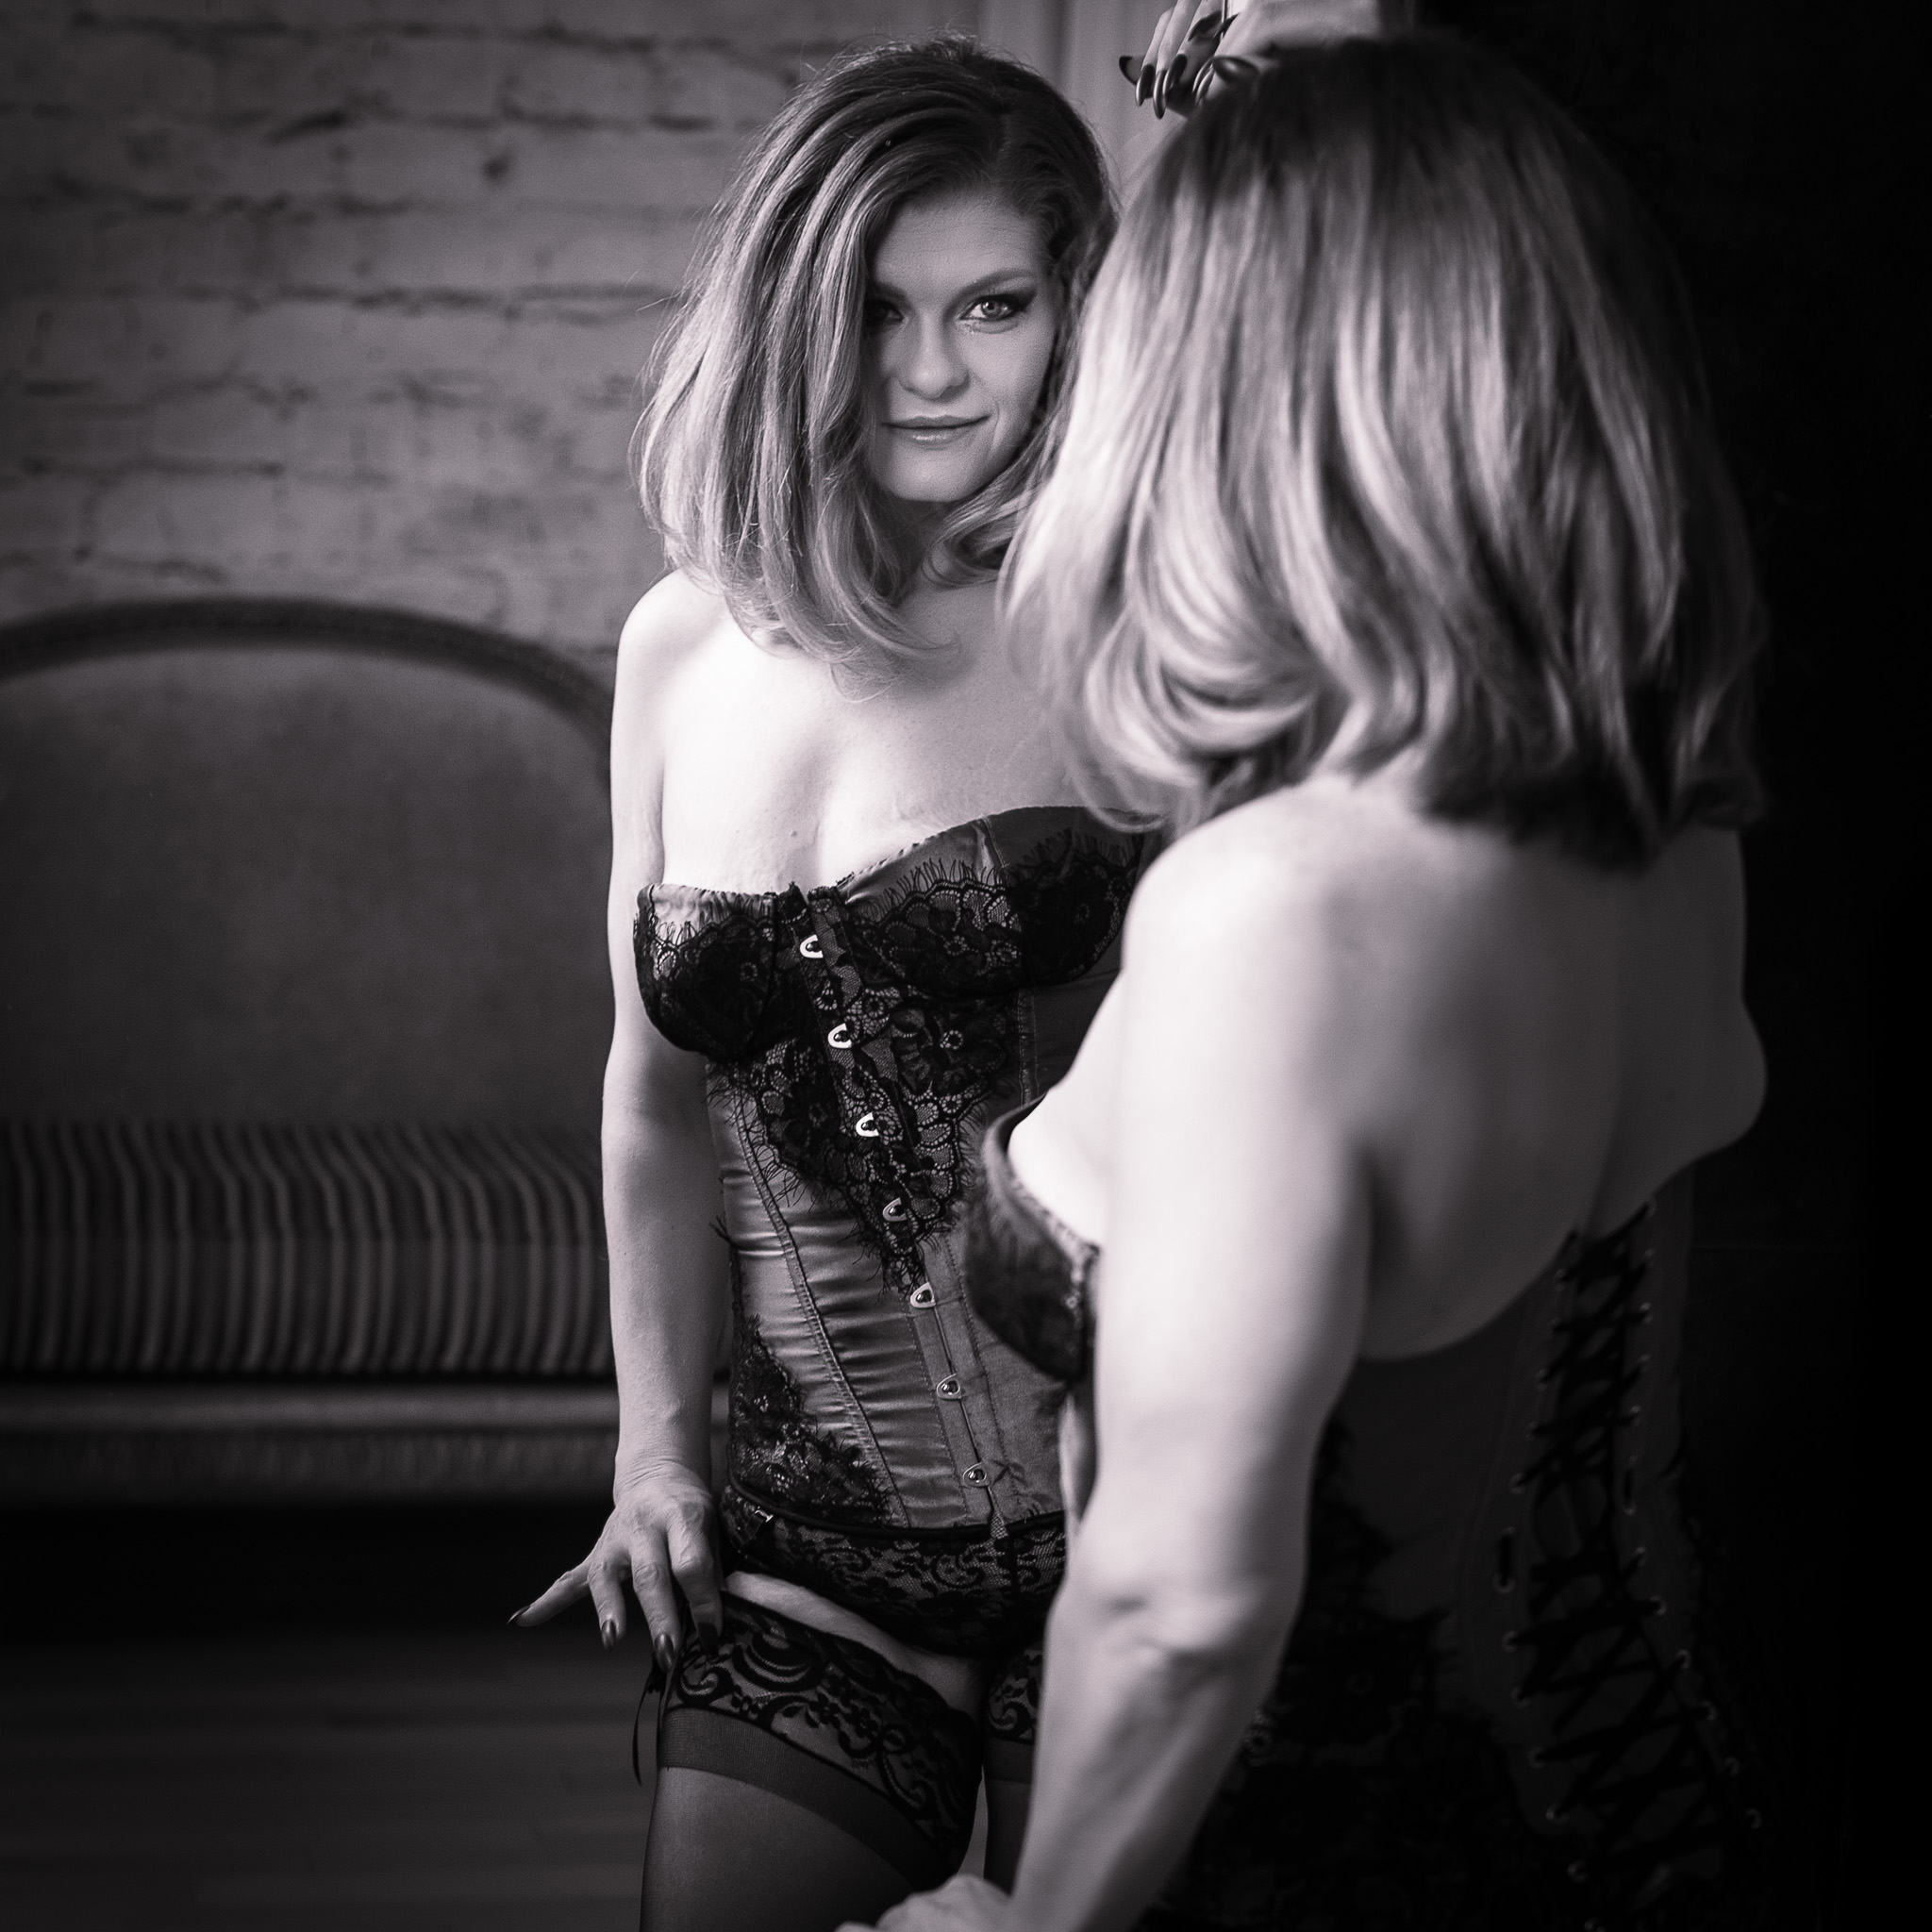 Victoria Secret Look in Boudoir Photography, Houston, Texas